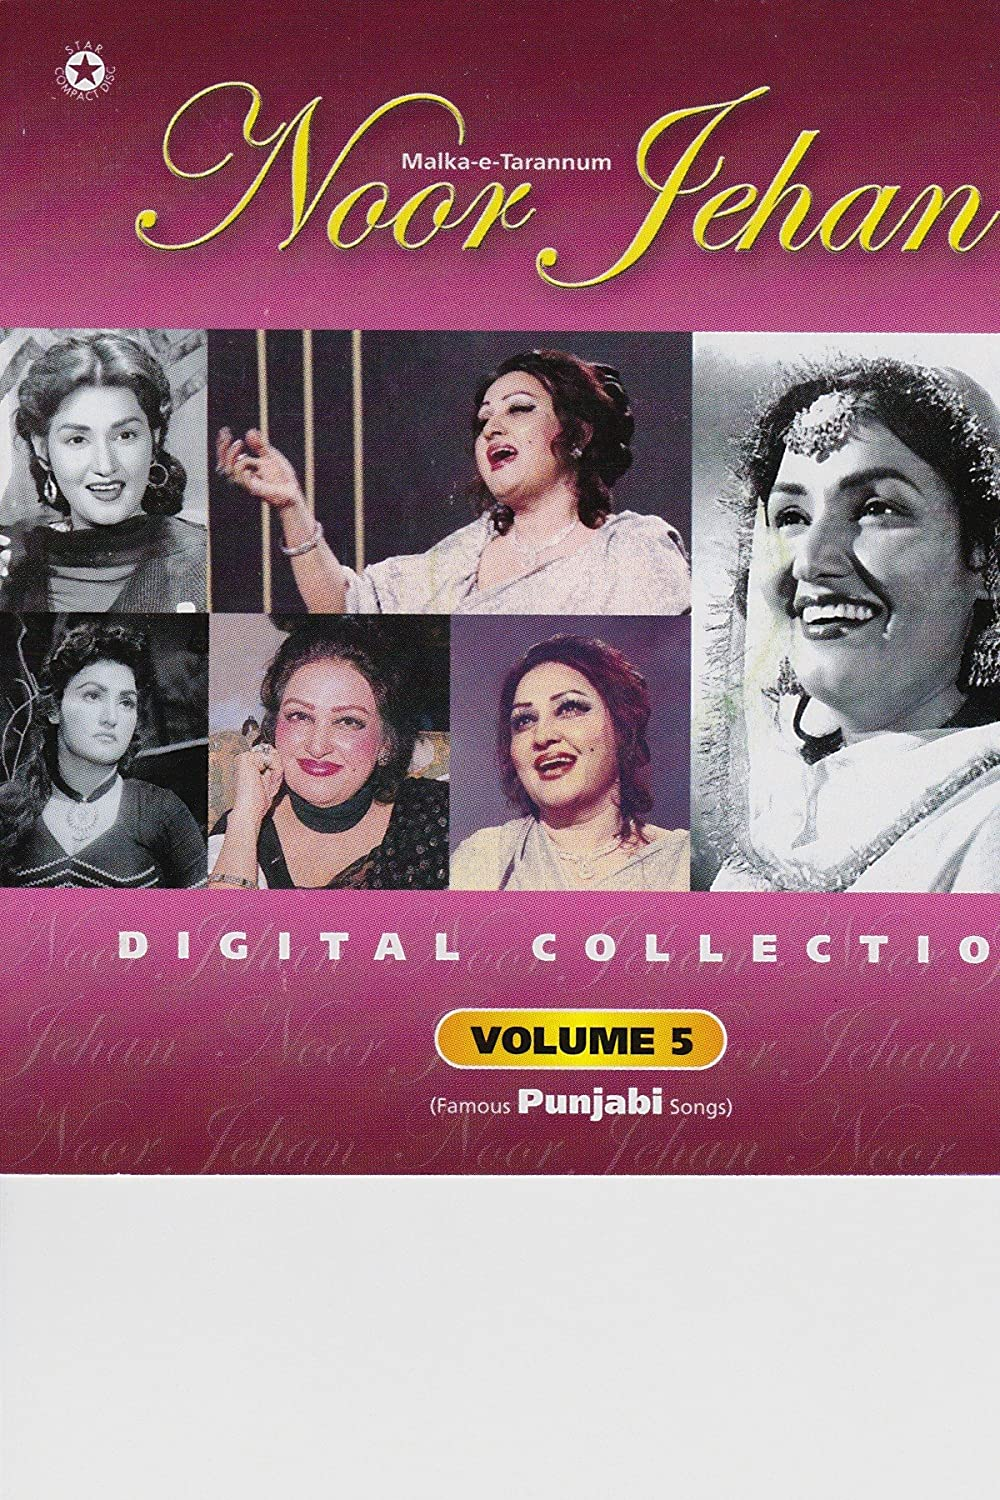 Digital Collection Volume 5 (Famous Punjabi Songs) by Noor